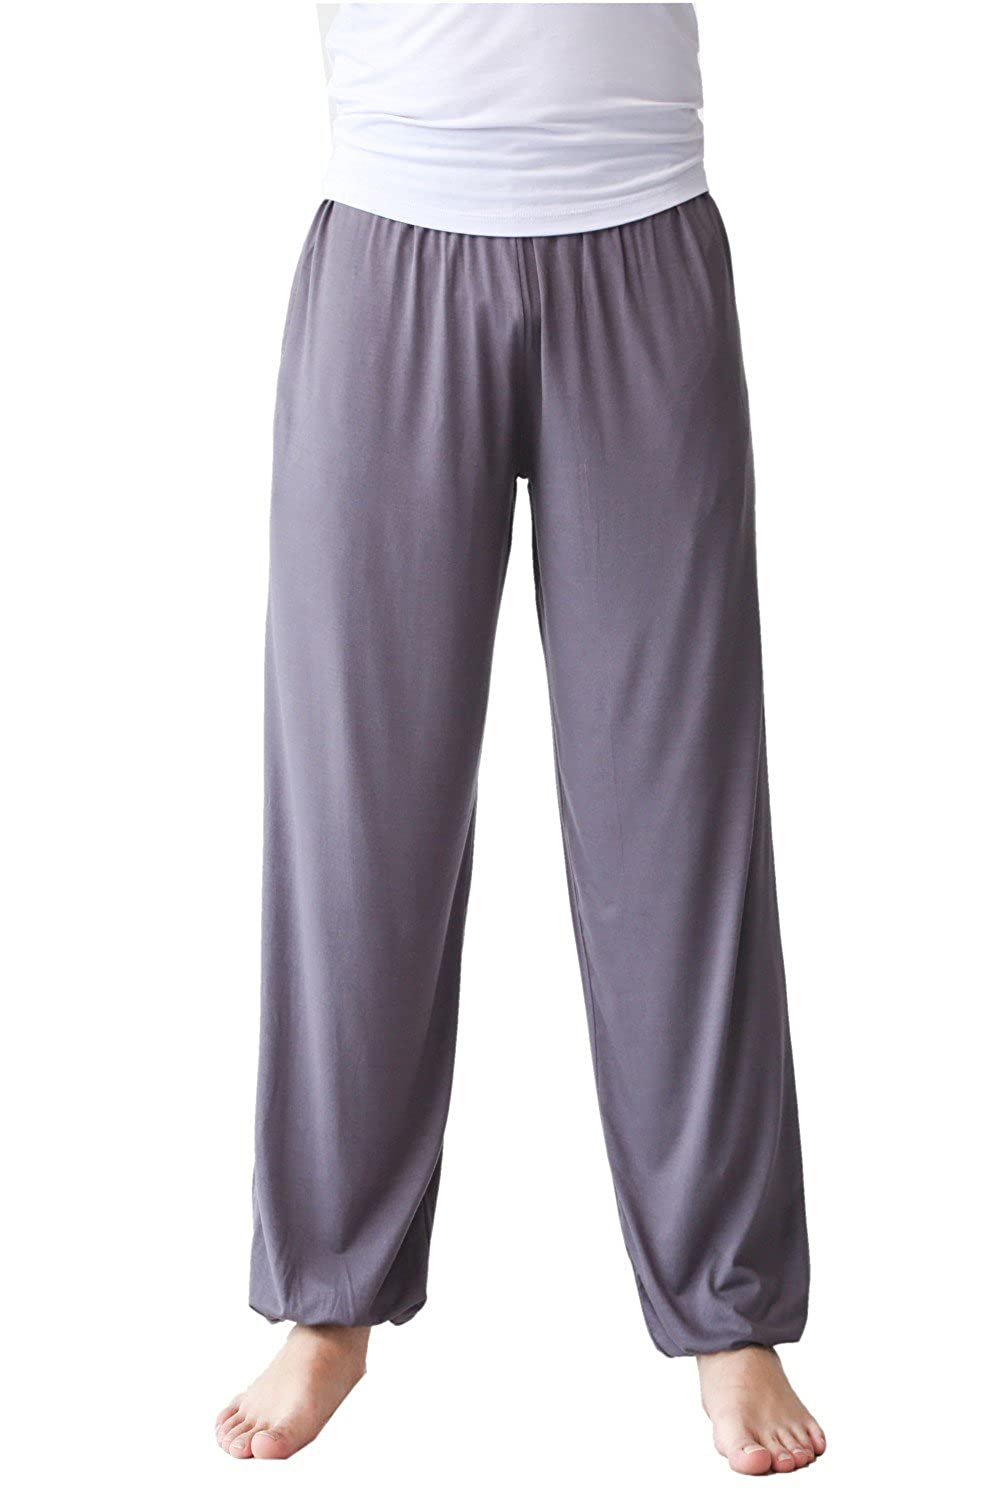 Guandoo Men's Loose Modal Yoga Pants Sports Dance Exercise Casual Trousers